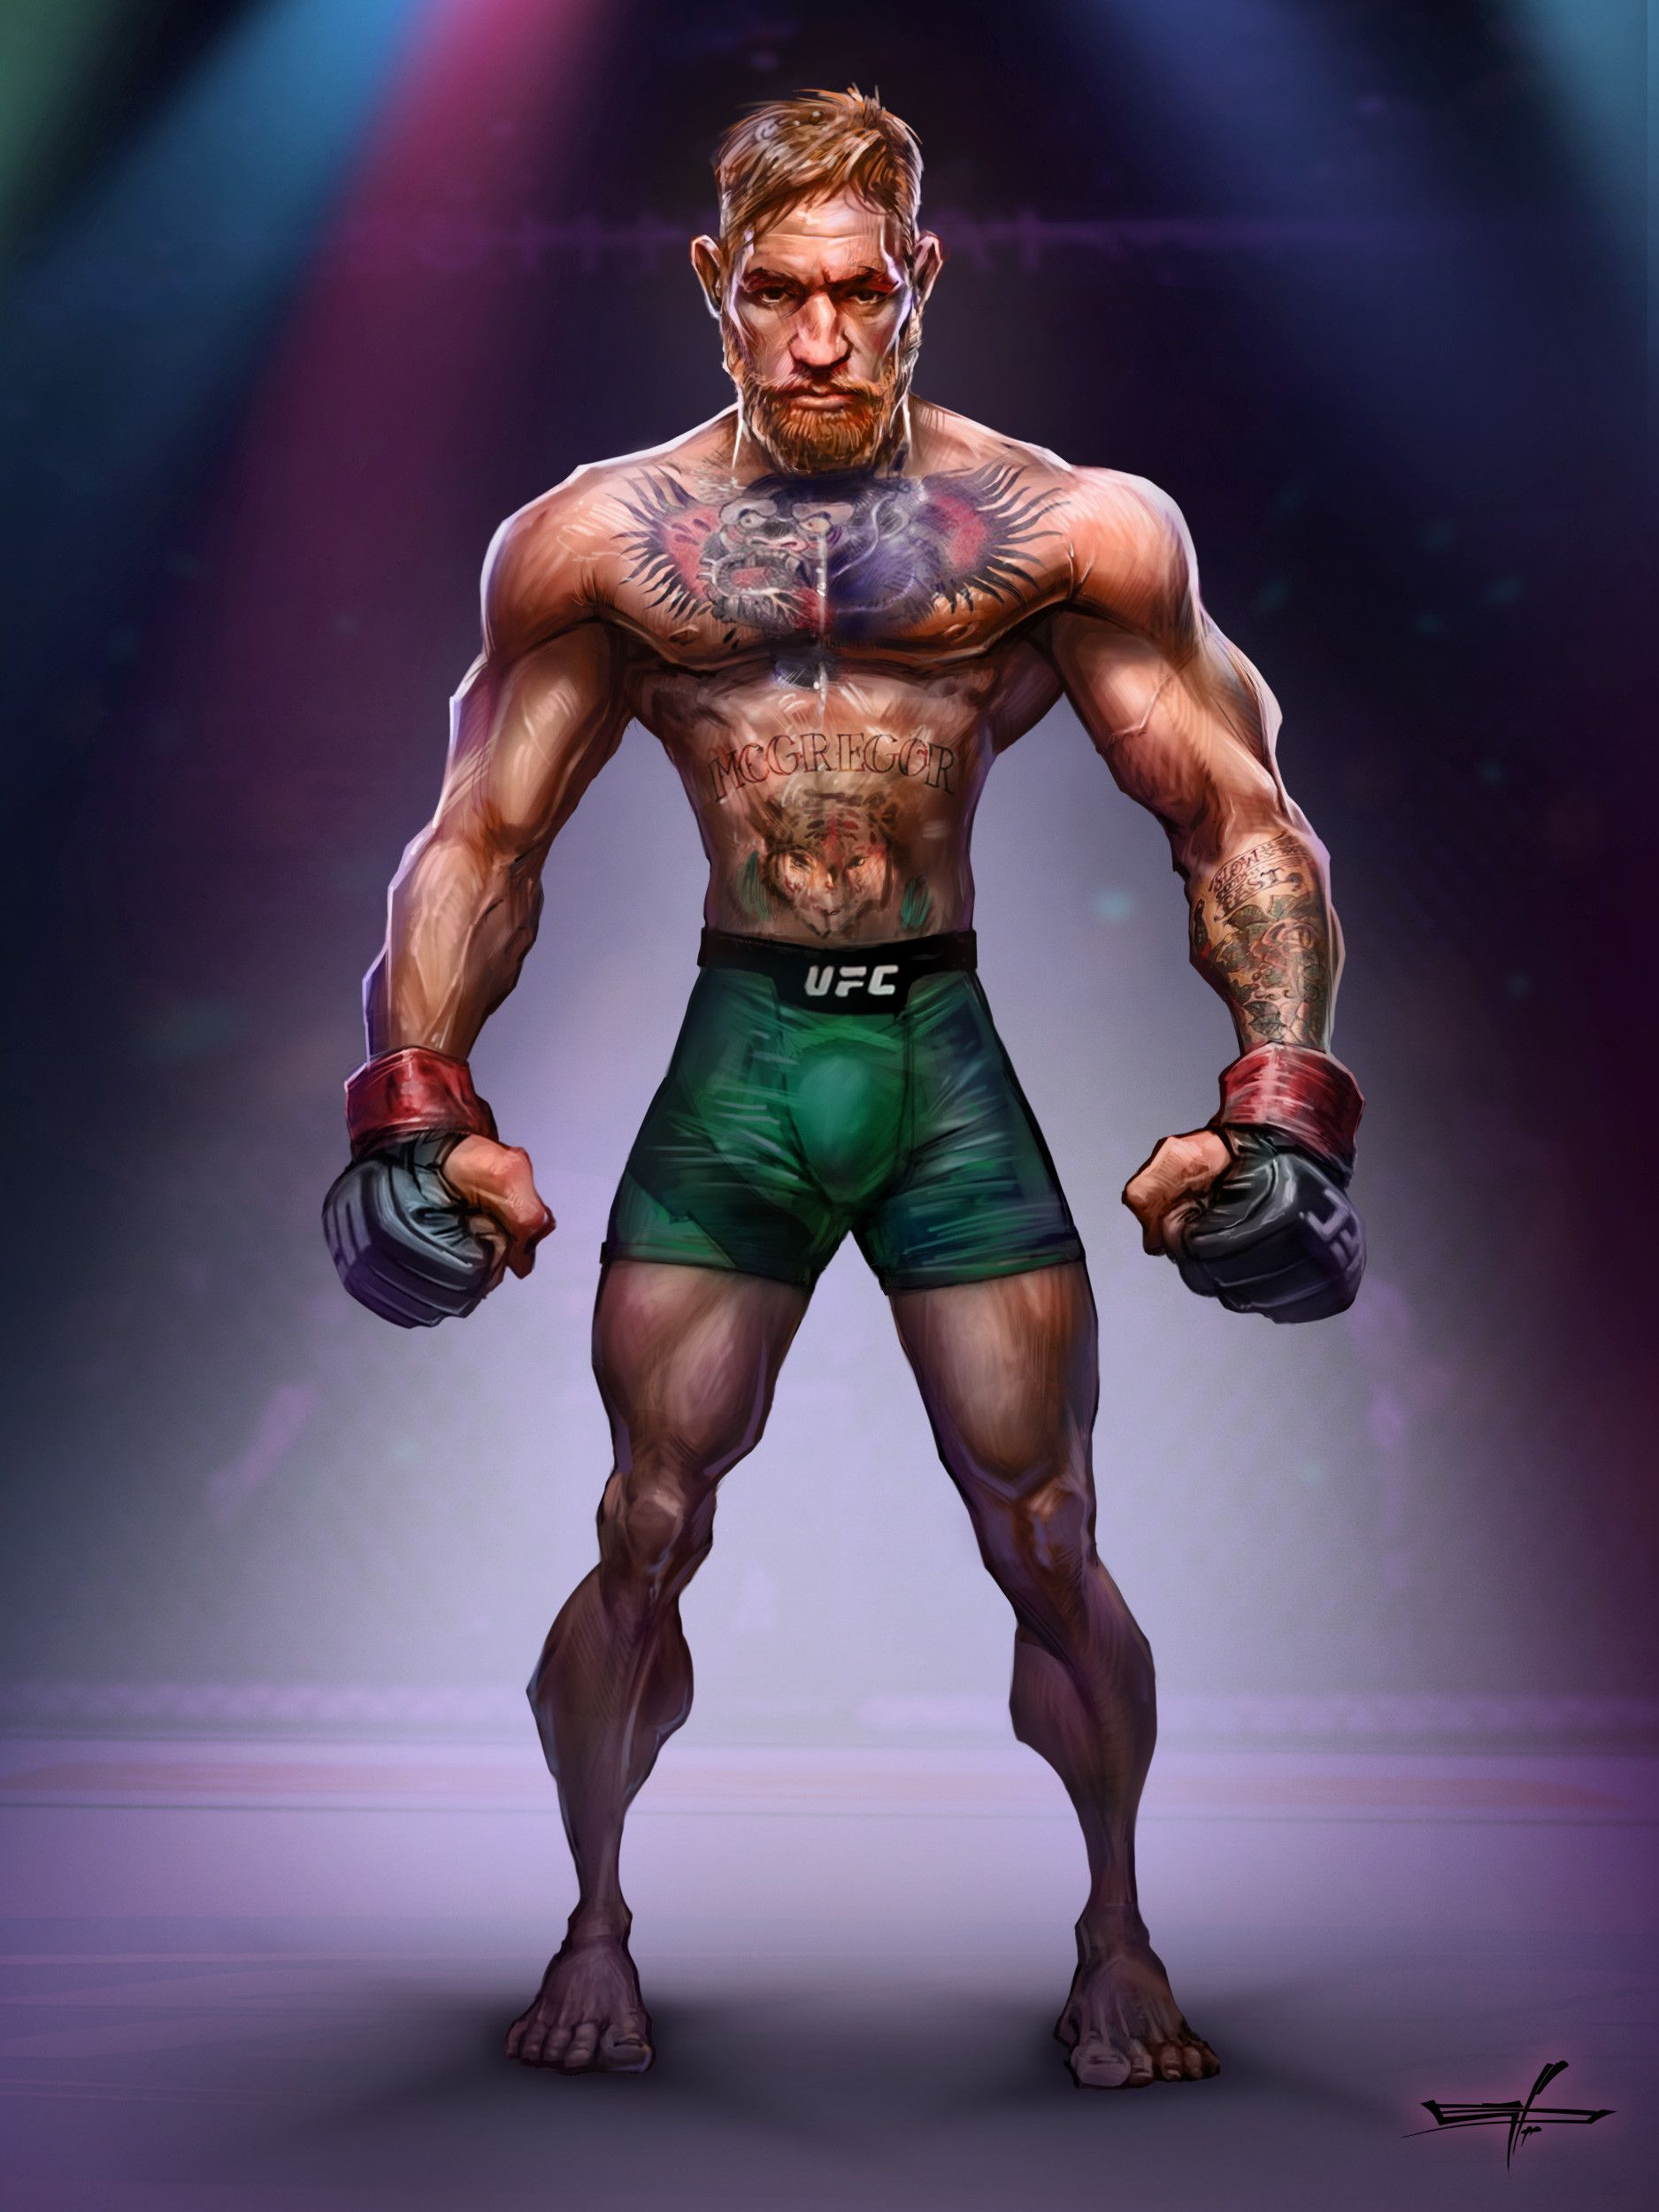 Pin By Dareios On Hugo In 2020 Ufc Boxing Ufc Fighters Ufc